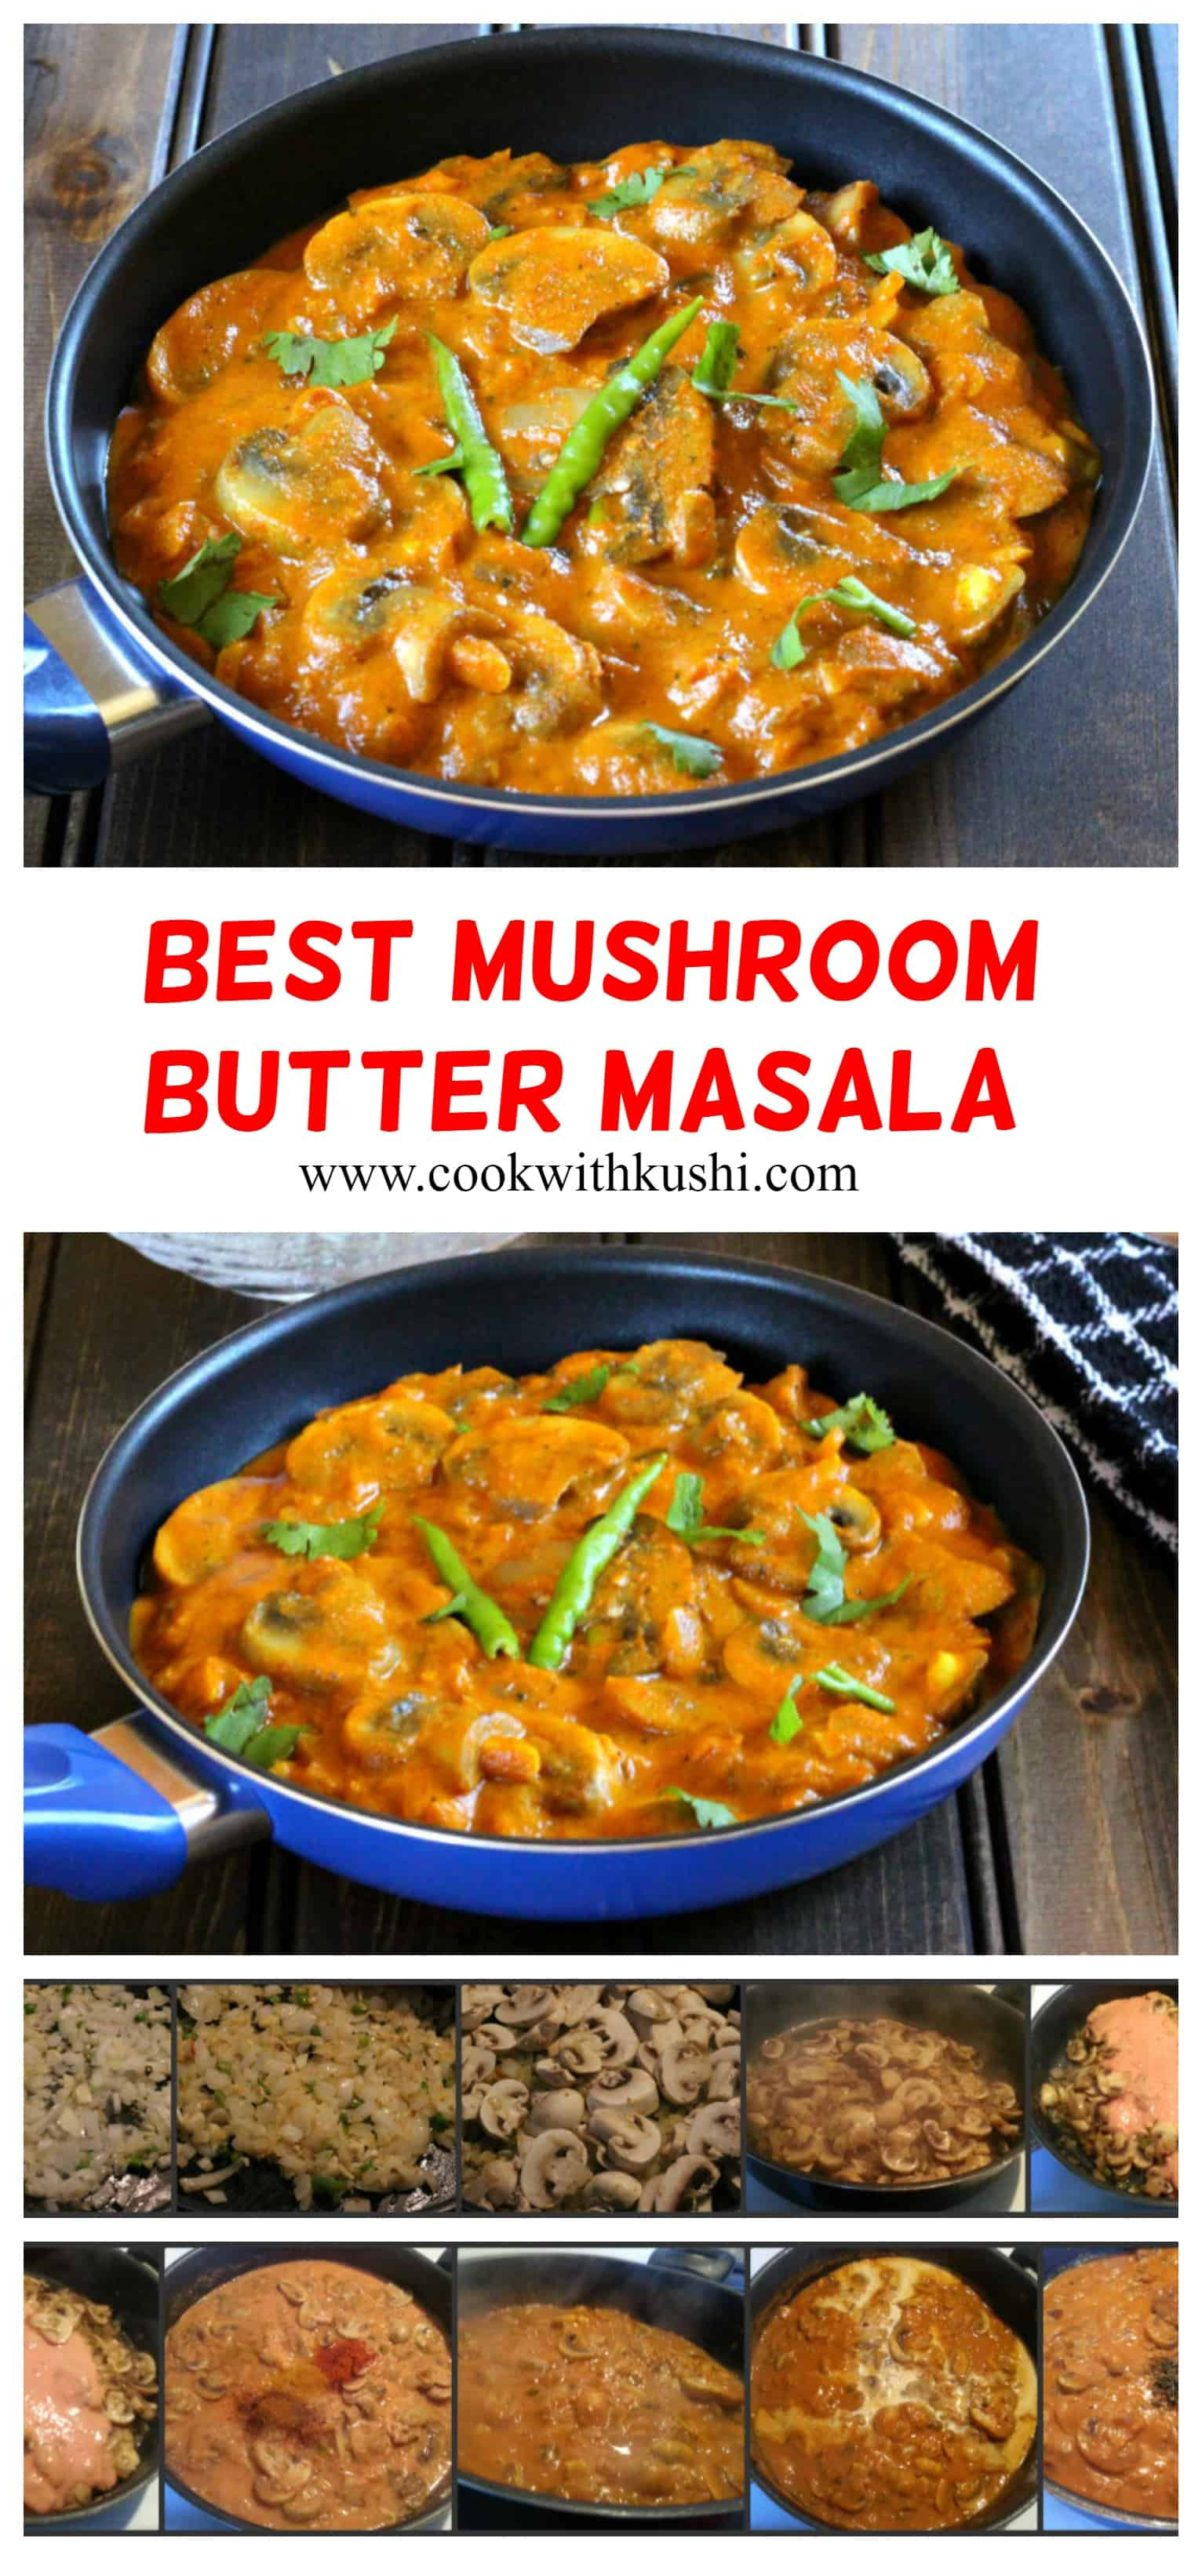 Mushroom Butter Masala is a rich and creamy, delicious Indian dish with full of flavors that is perfect accompaniment for steamed rice or bread varieties like naan, roti, pita bread or even dosas. #summerrecipes #easydinnerrecipes #dinnerideas #mushroomrecipes #indiandishes #buttermasala #paneerrcipes